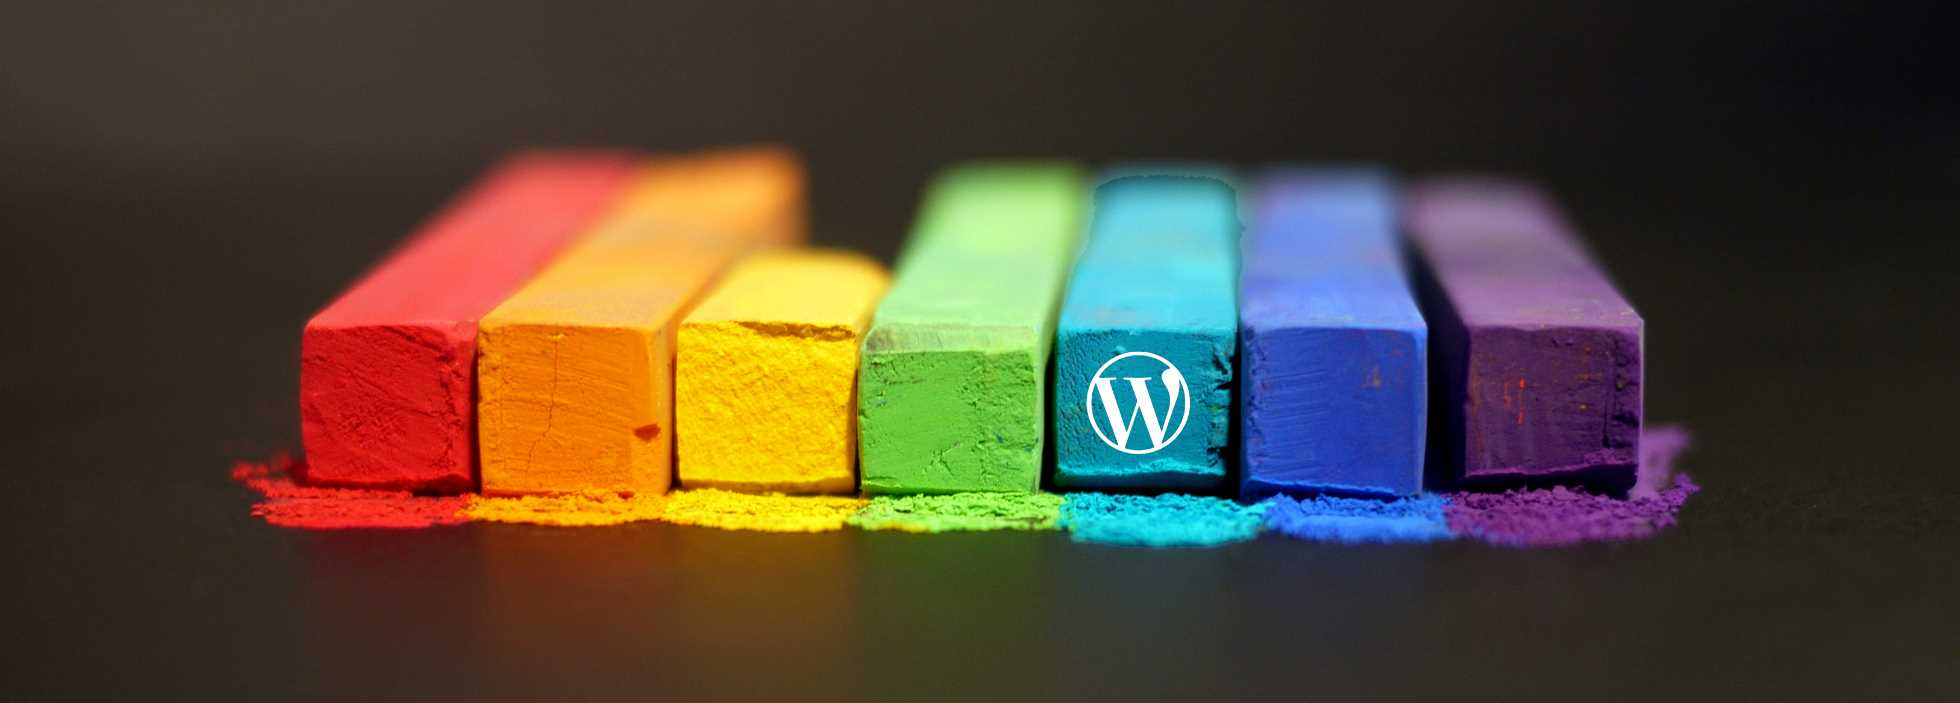 wordpress-per-tutti-websapp.it-jpeg